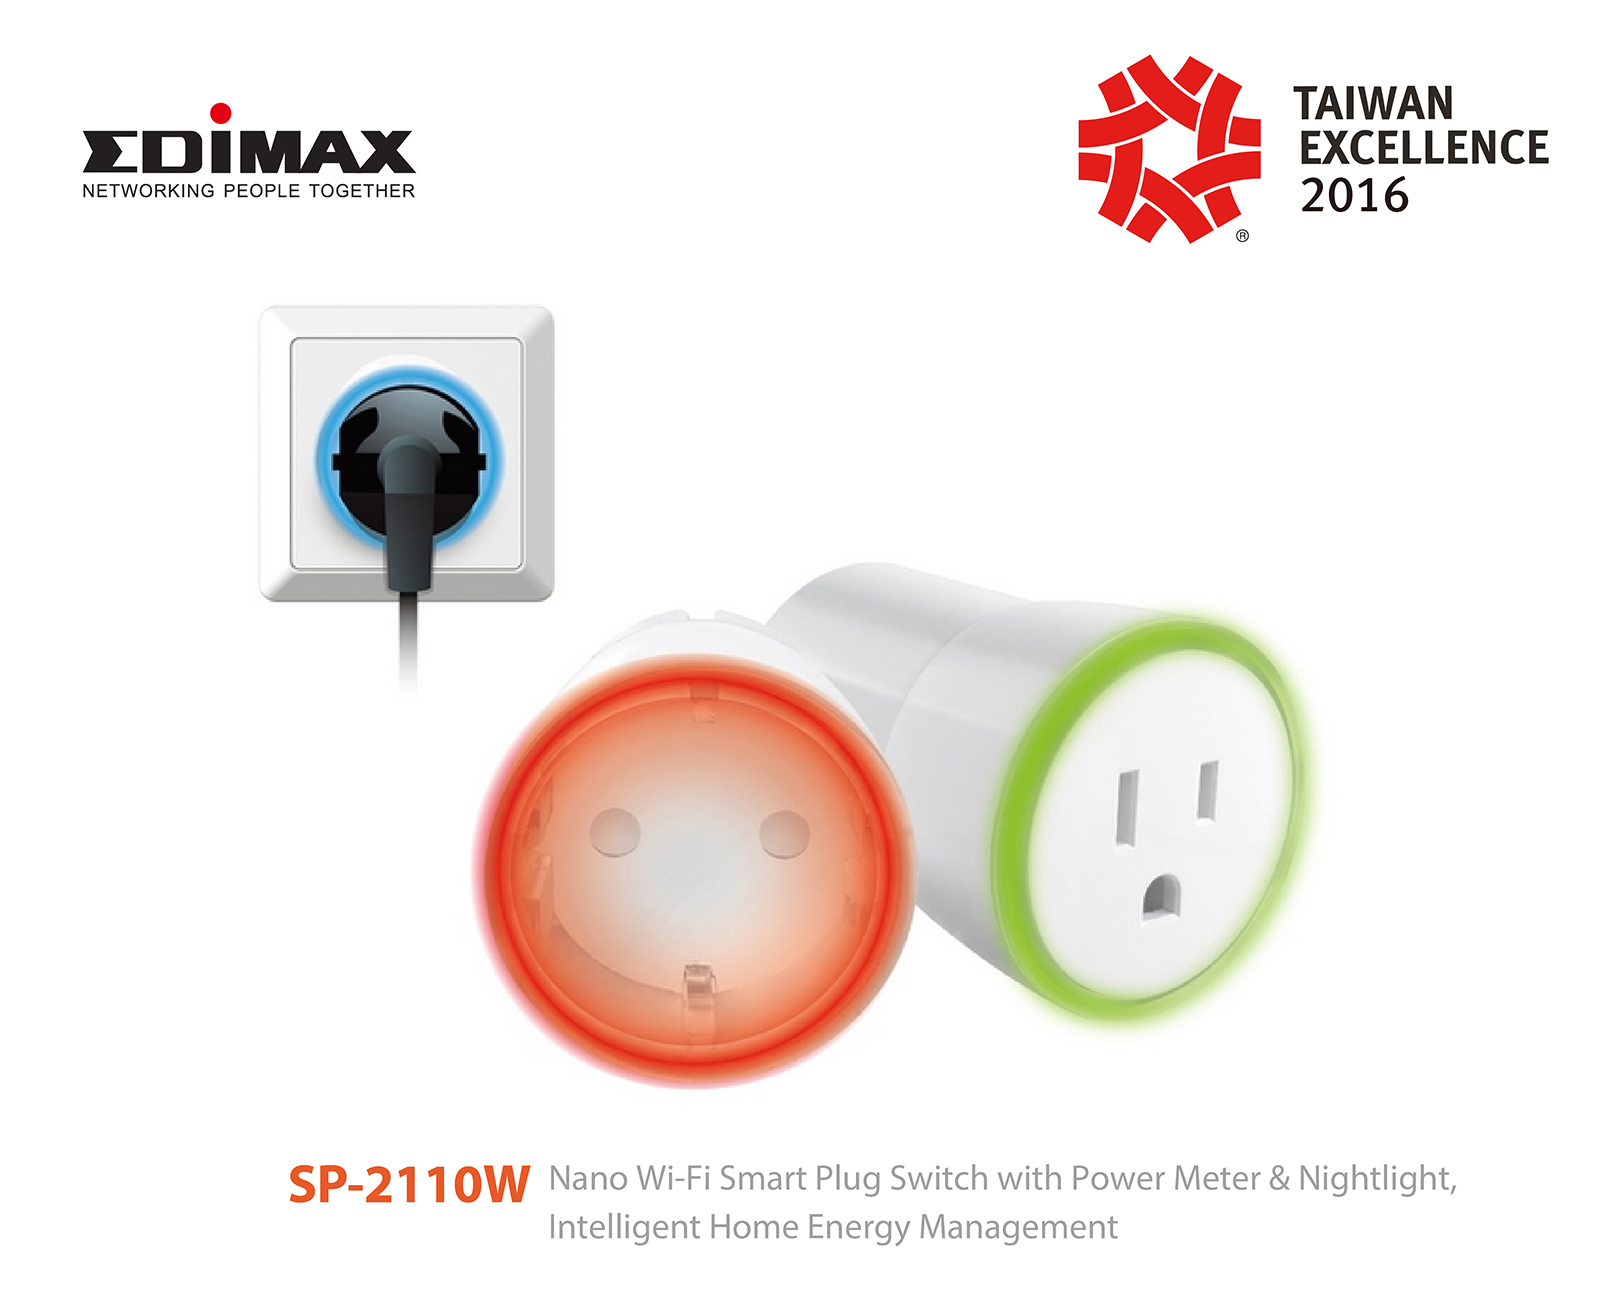 SP-2110W Taiwan Excellence 2016